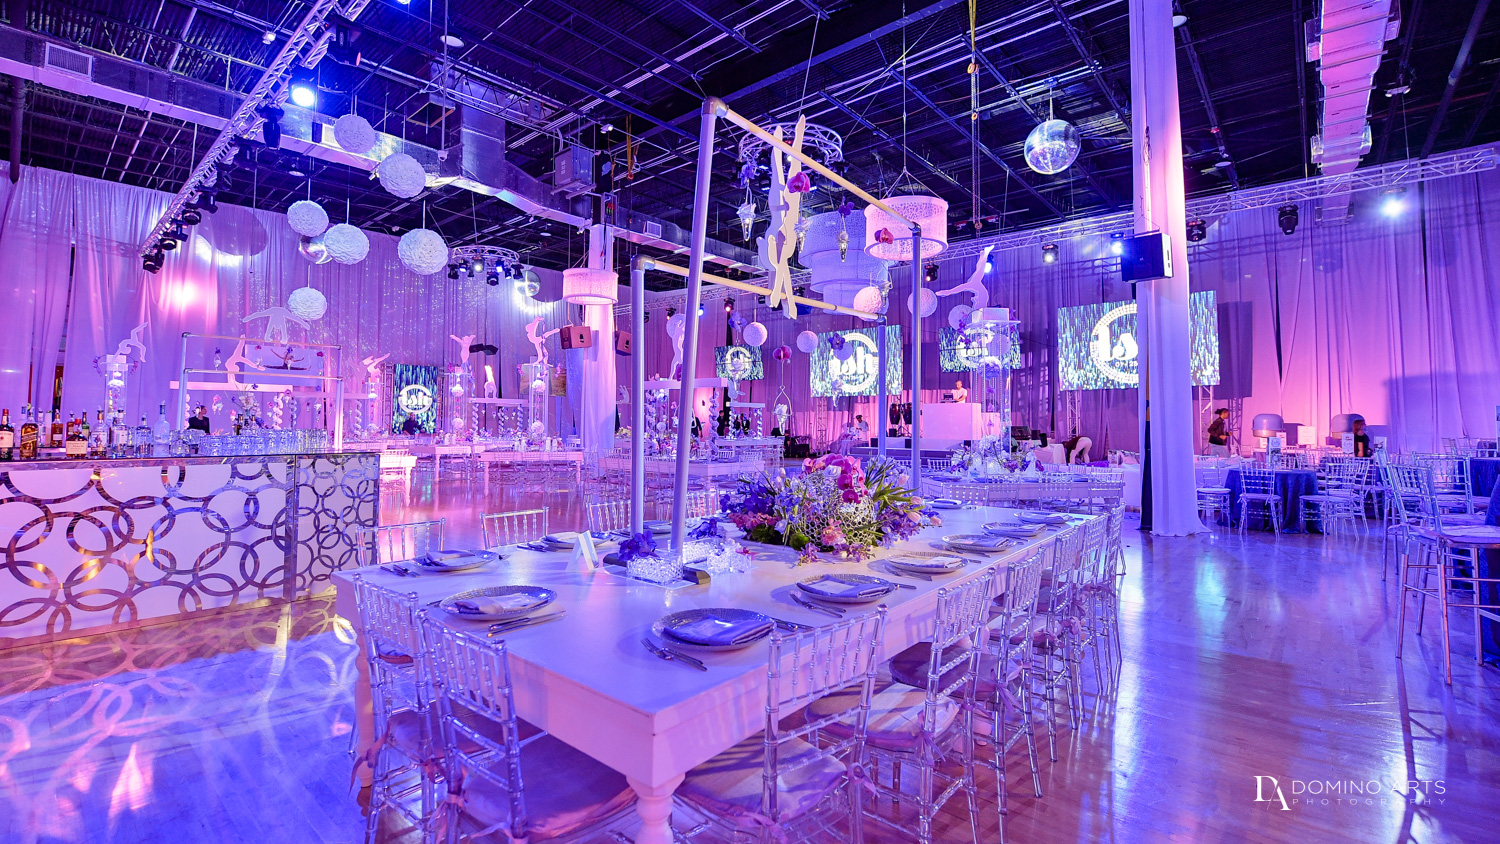 Gymnastics Theme Bat Mitzvah Photography at Xtreme Action Park by Domino Arts